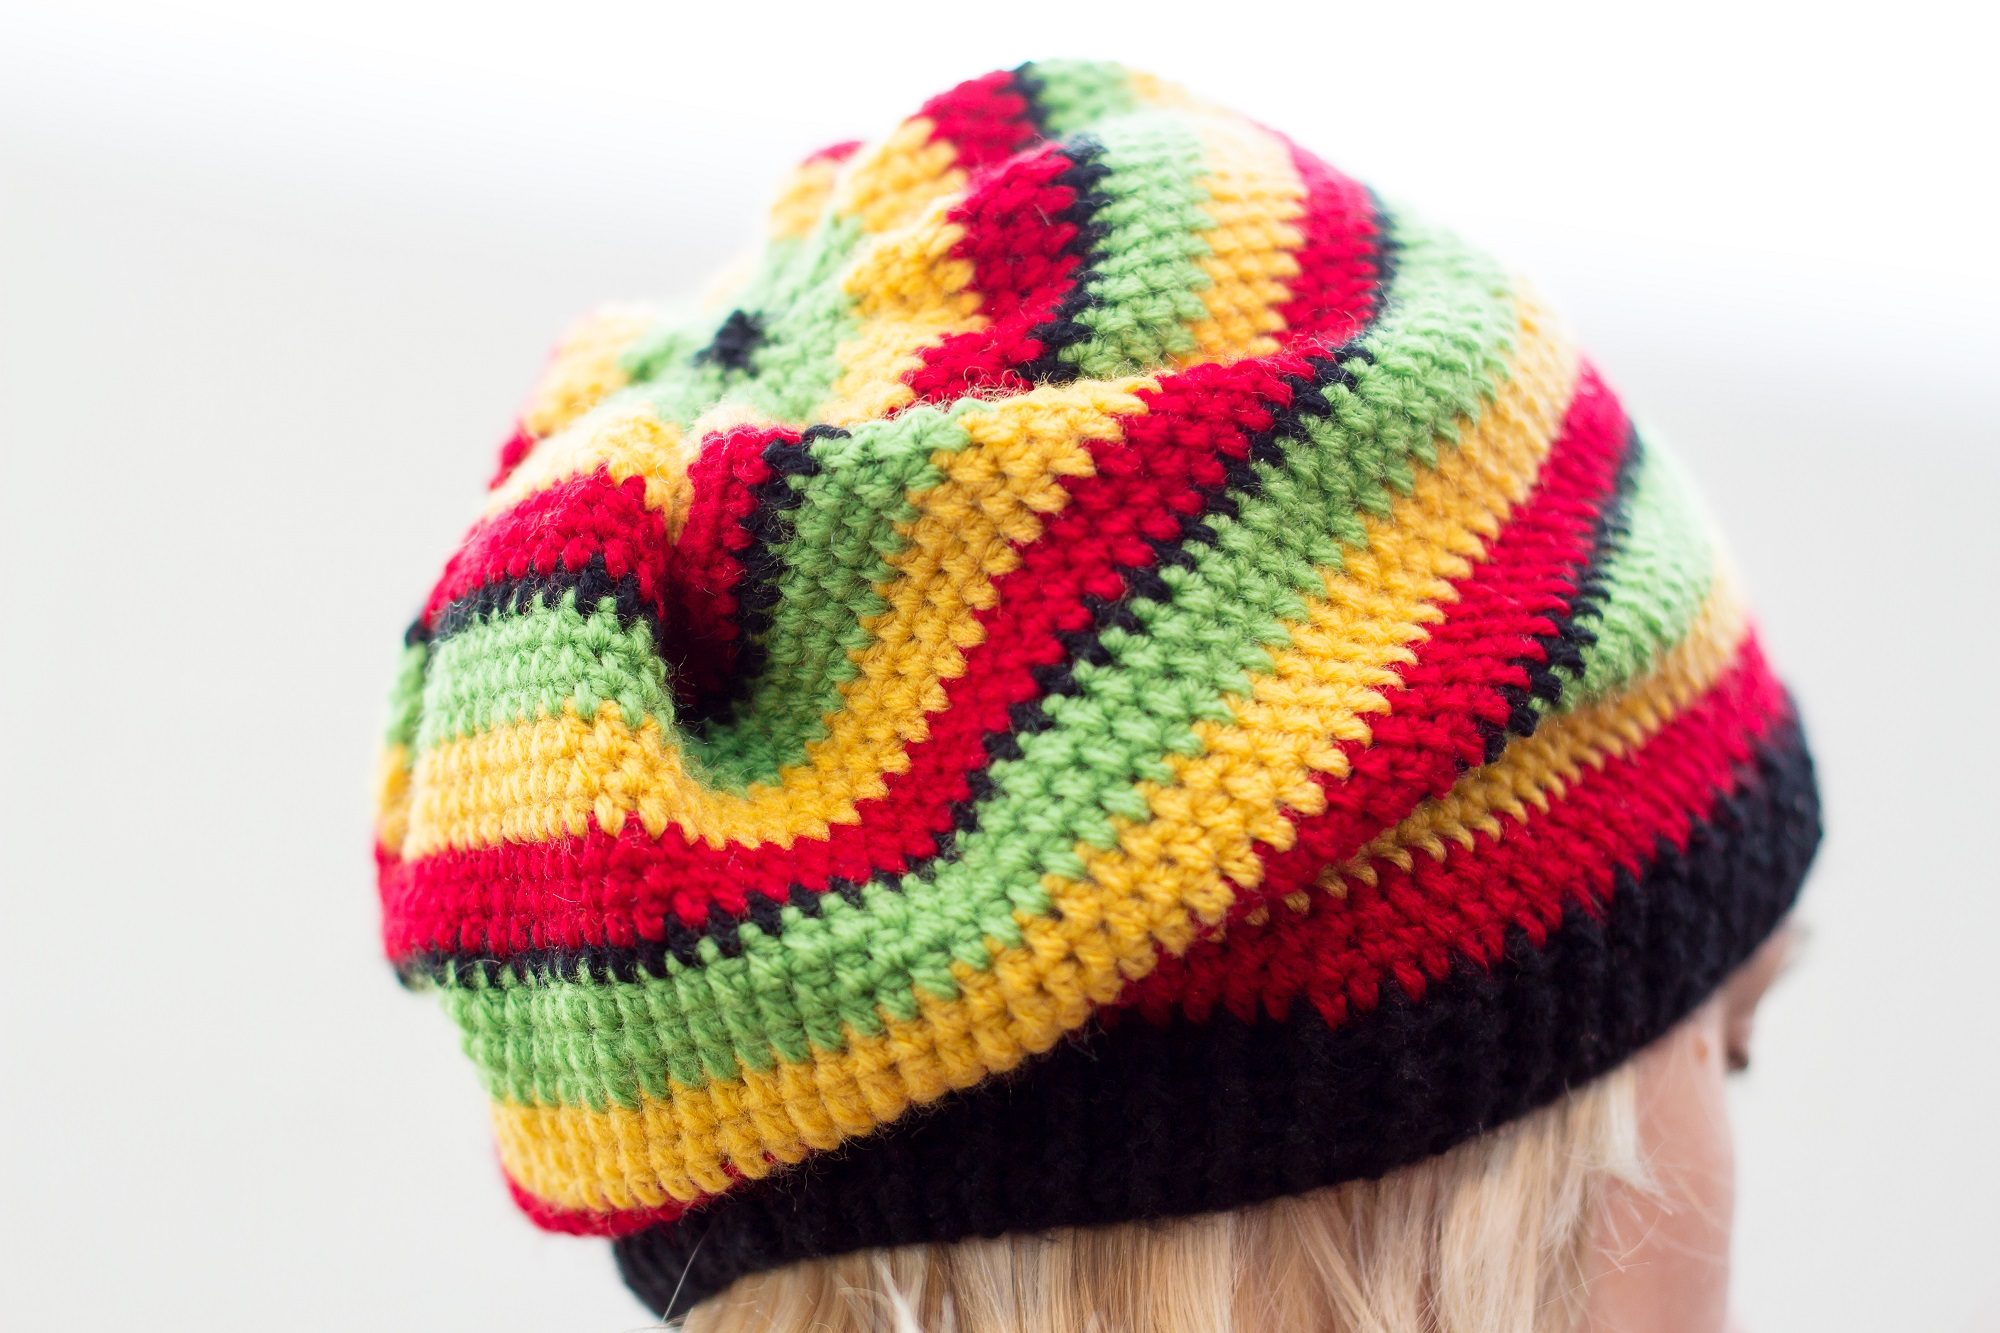 Diy 100 ideas on feedspot rss feed if you are looking to crochet a fun design then the rasta hat pattern is for you this video tutorial shows you step by step how to crochet a rasta hat baditri Gallery